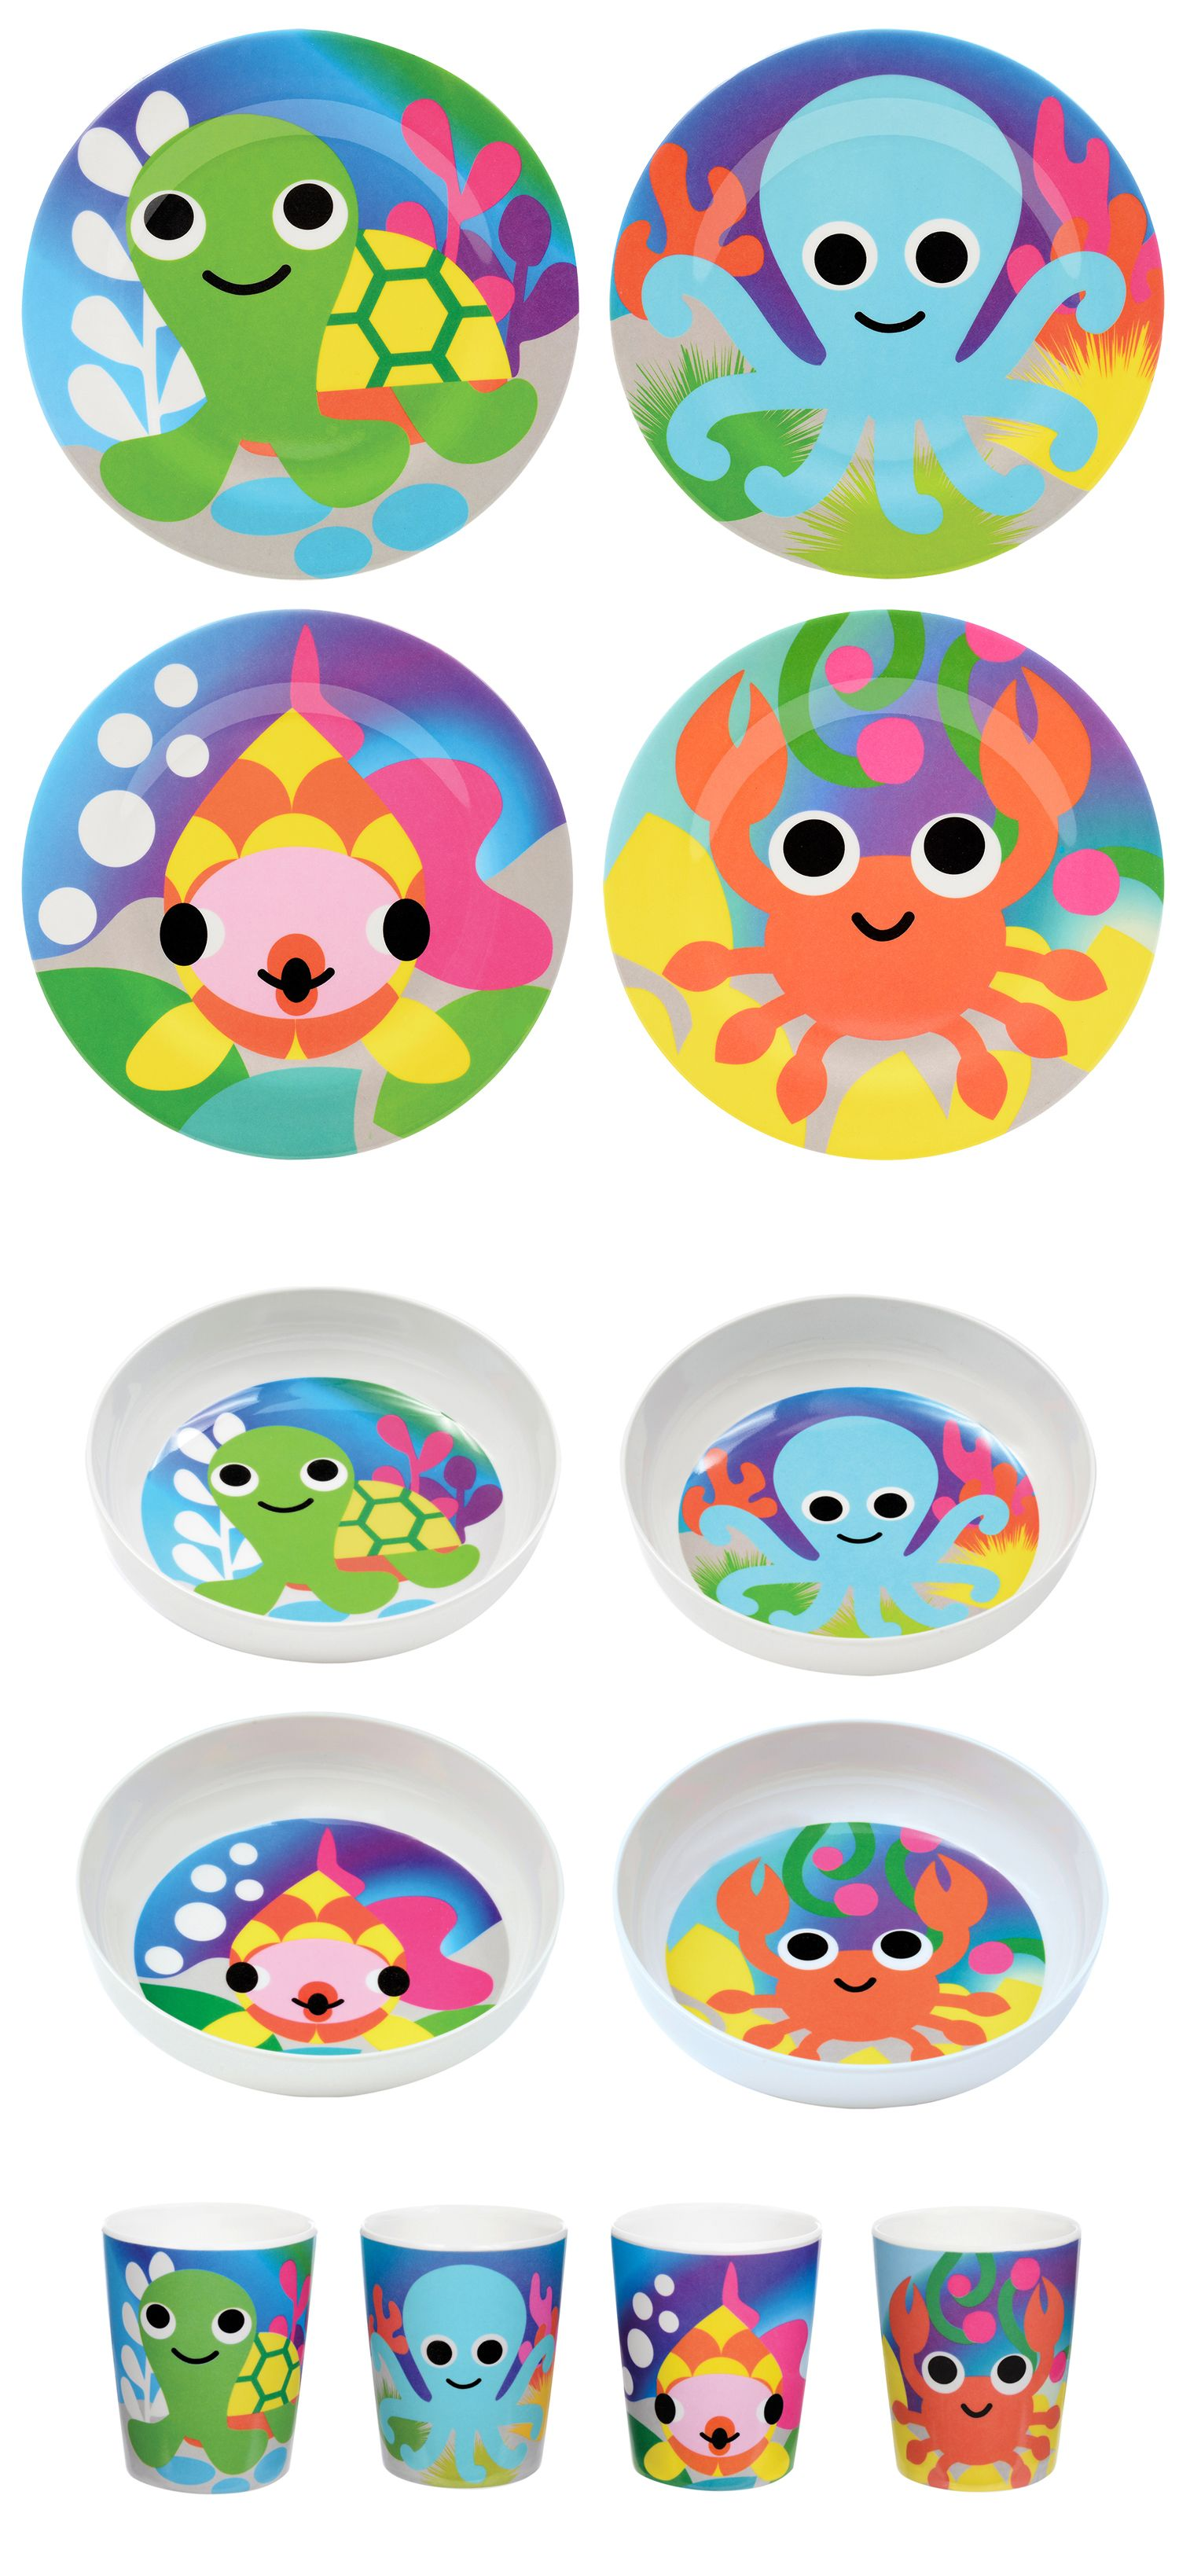 French Bull OCEAN COLLECTION: melamine, kids plates, kids bowls, kids juice cups, BPA-free, kid friendly tableware, safe indoors and outdoors, scratch and shatter resistance, dishwasher safe, Turtle, Octopus, Crab, Fish